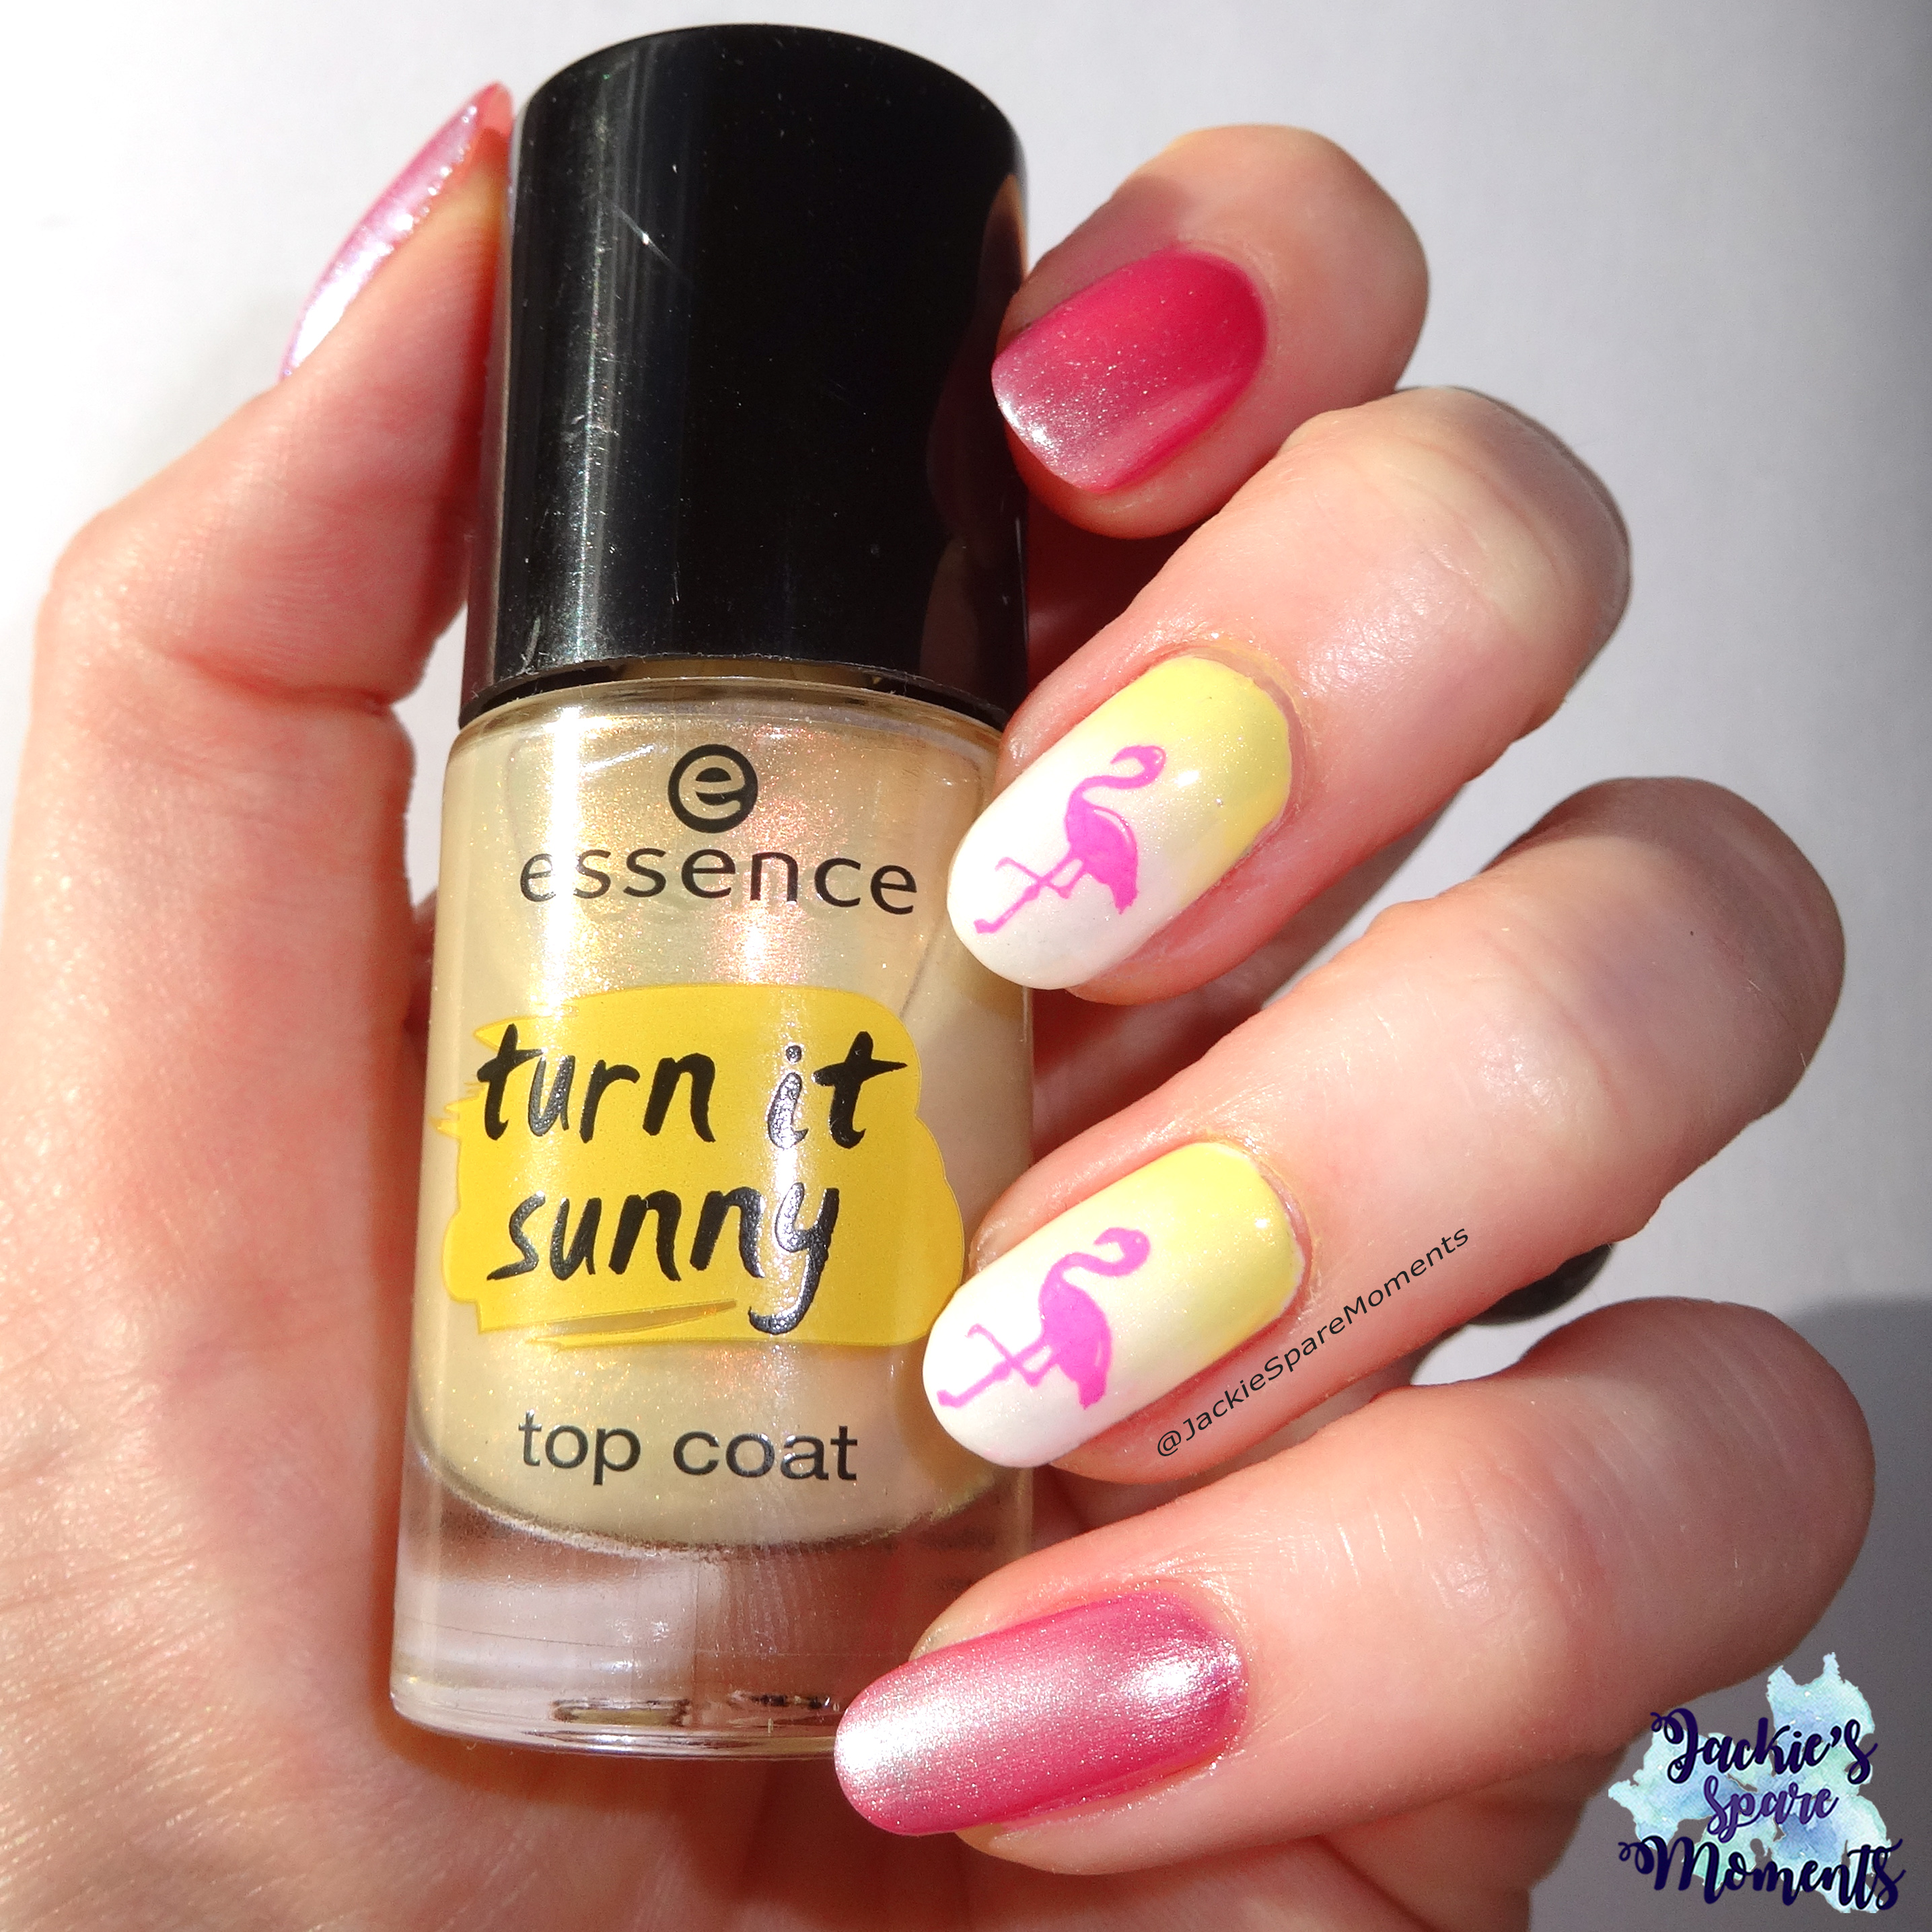 Tropical nail art with essence turn it sunny top coat